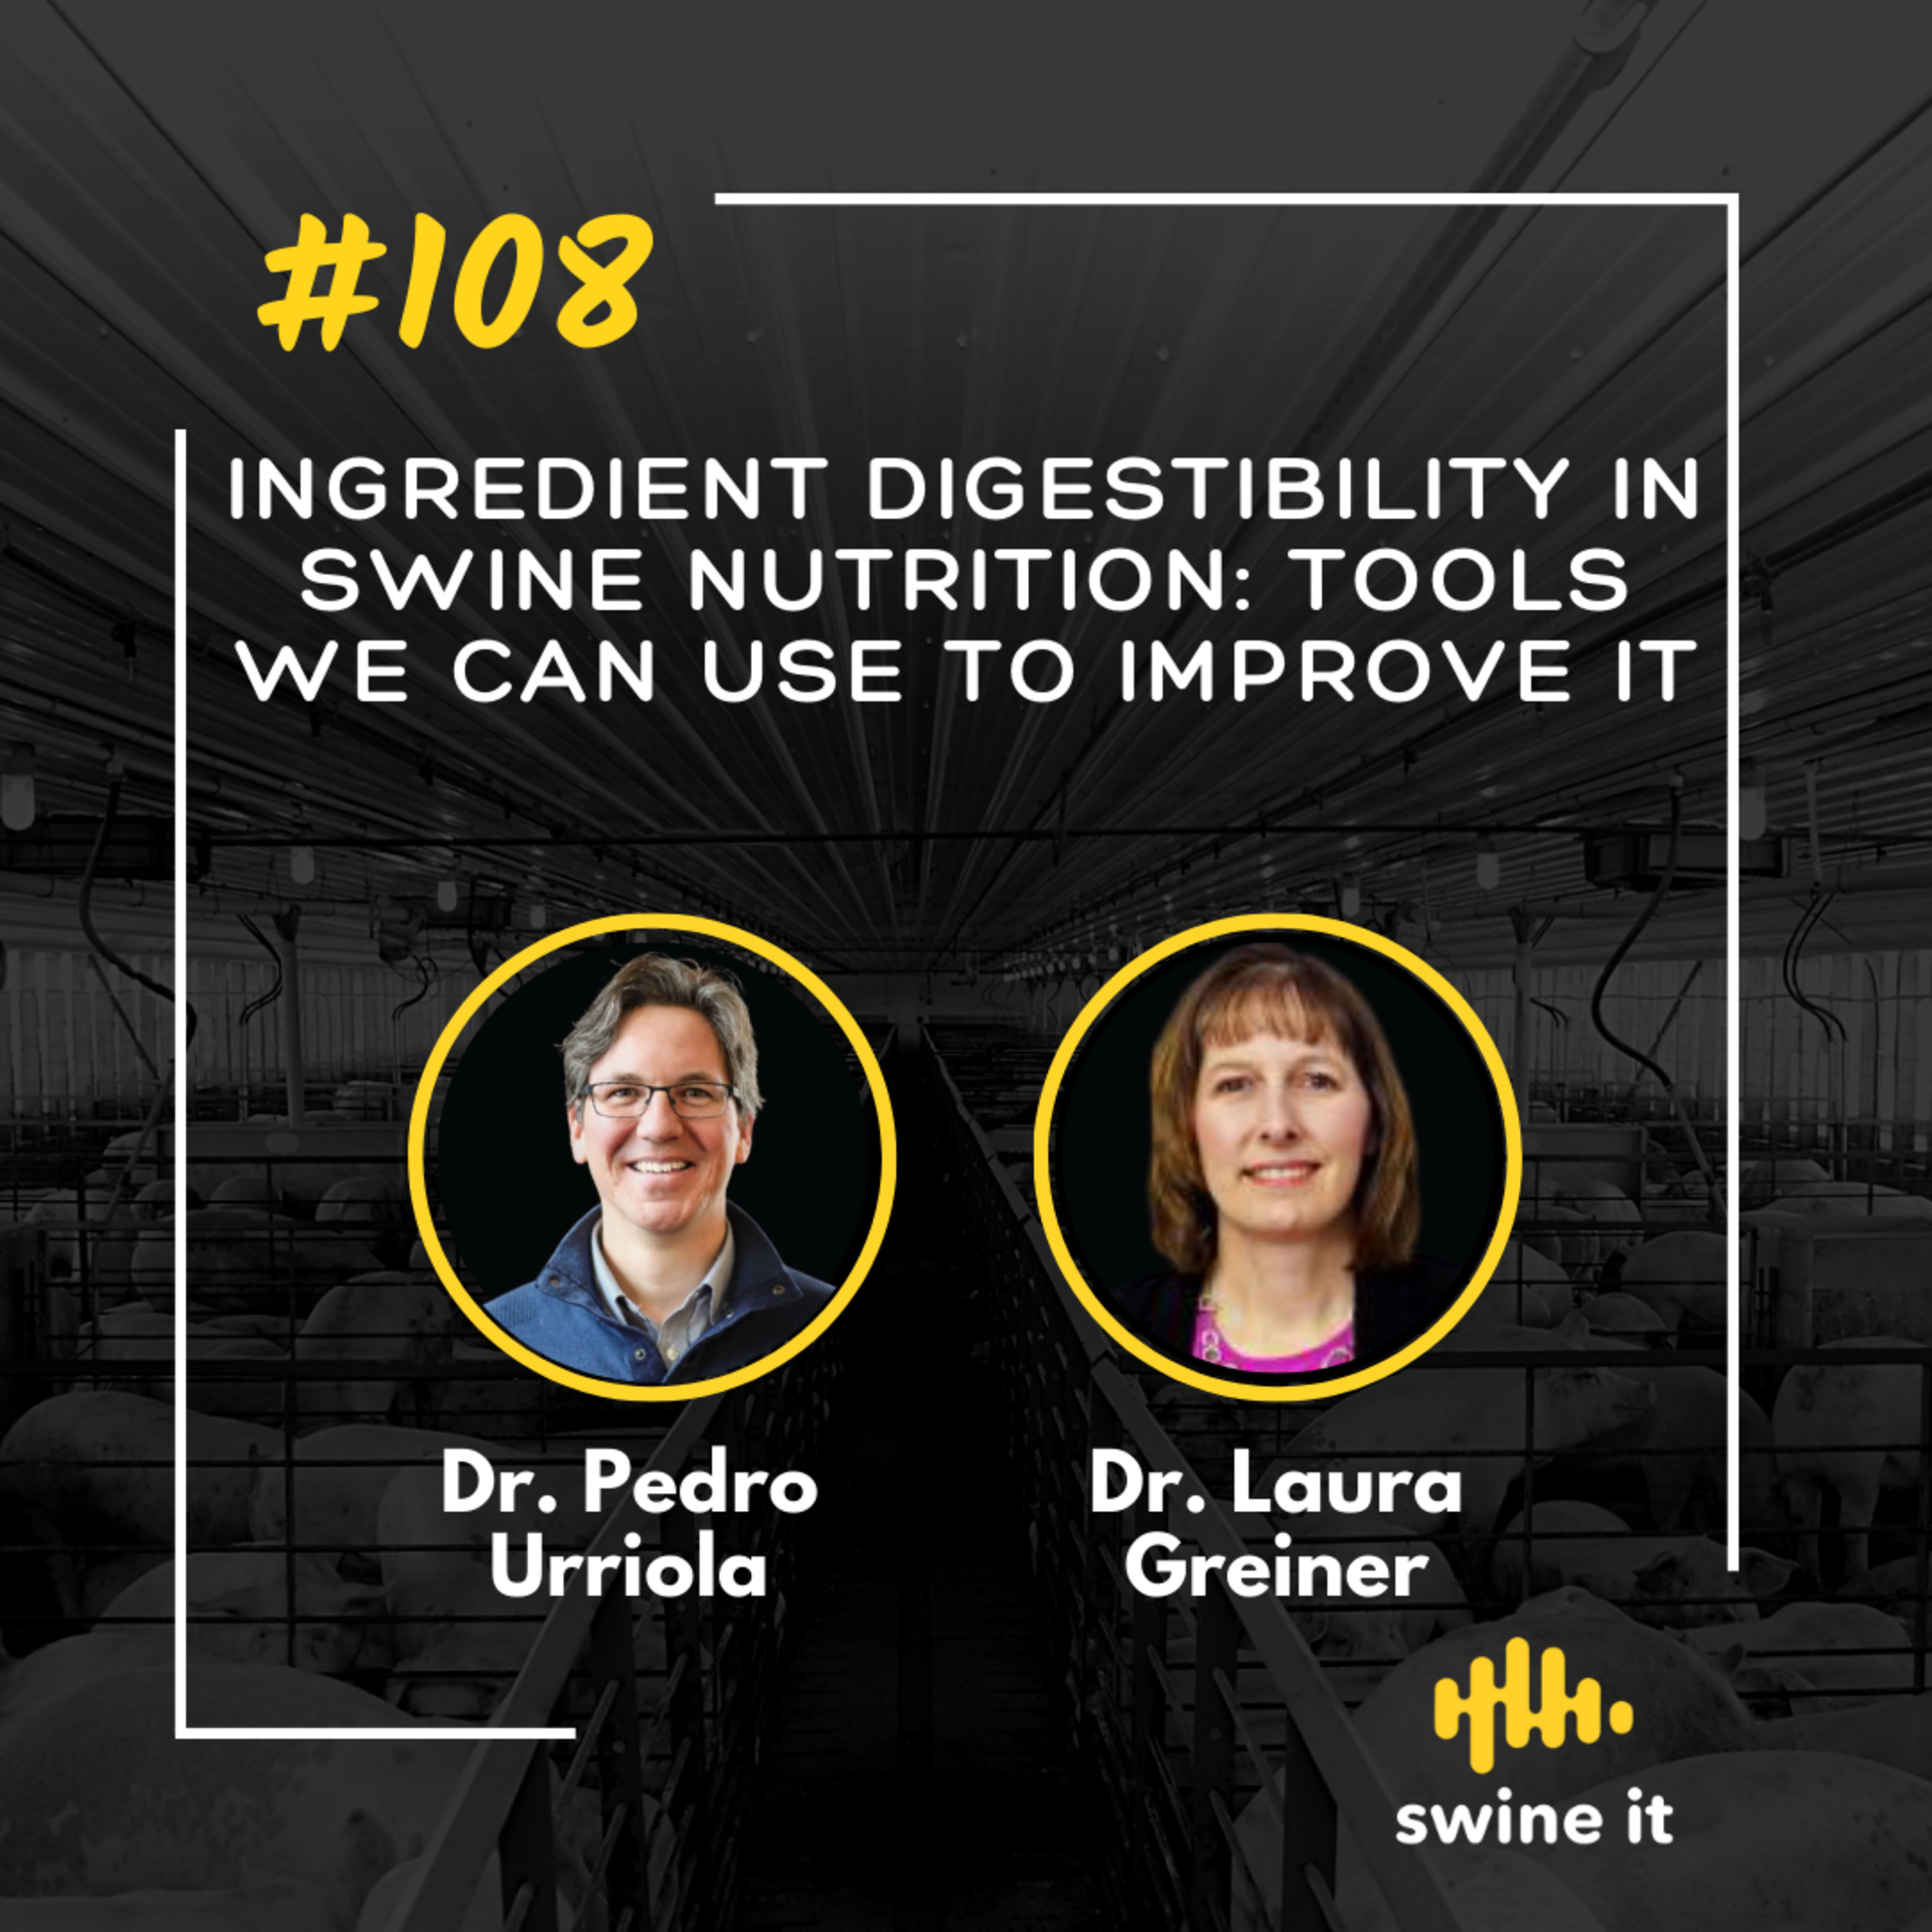 Ingredient digestibility in swine nutrition: tools we can use to improve it - Dr. Pedro Urriola